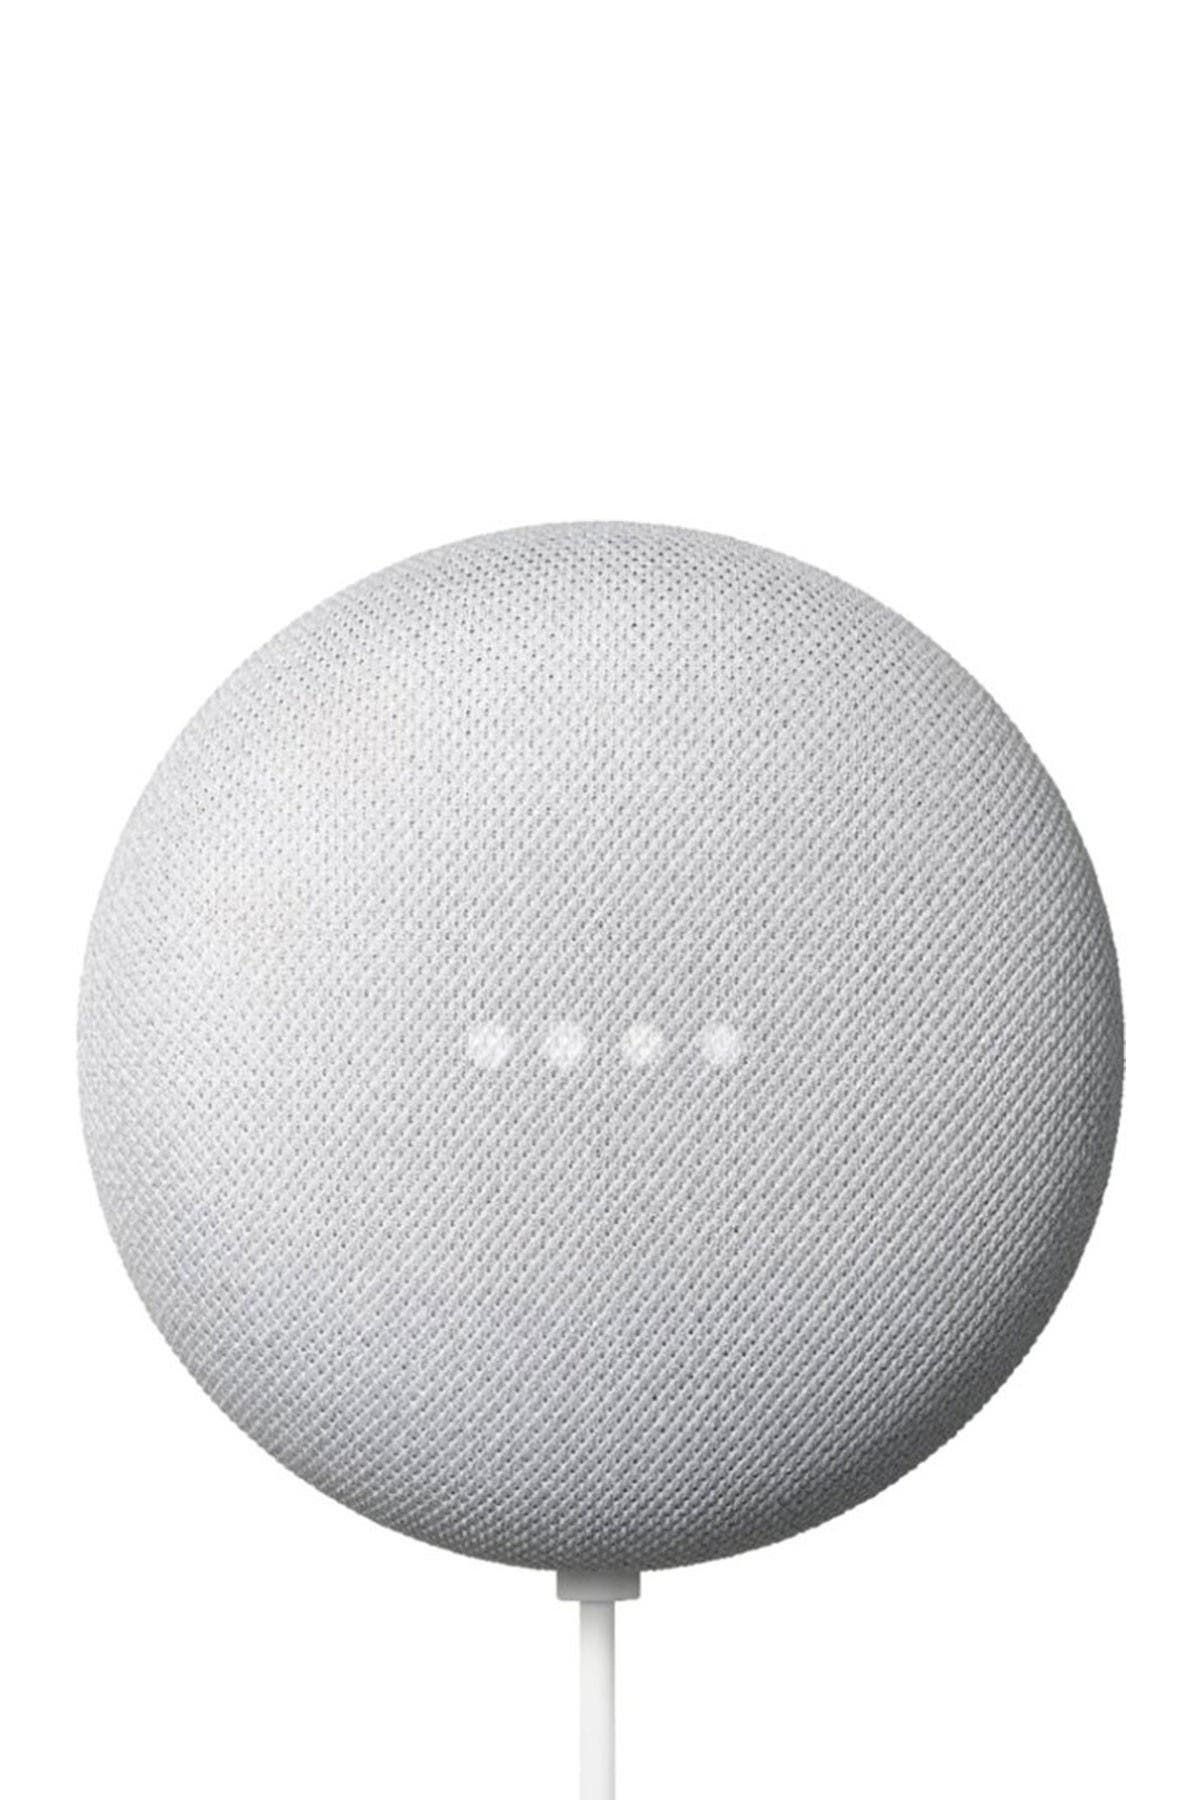 Image of GOOGLE Home Mini, Chalk, Individual, Gen 2